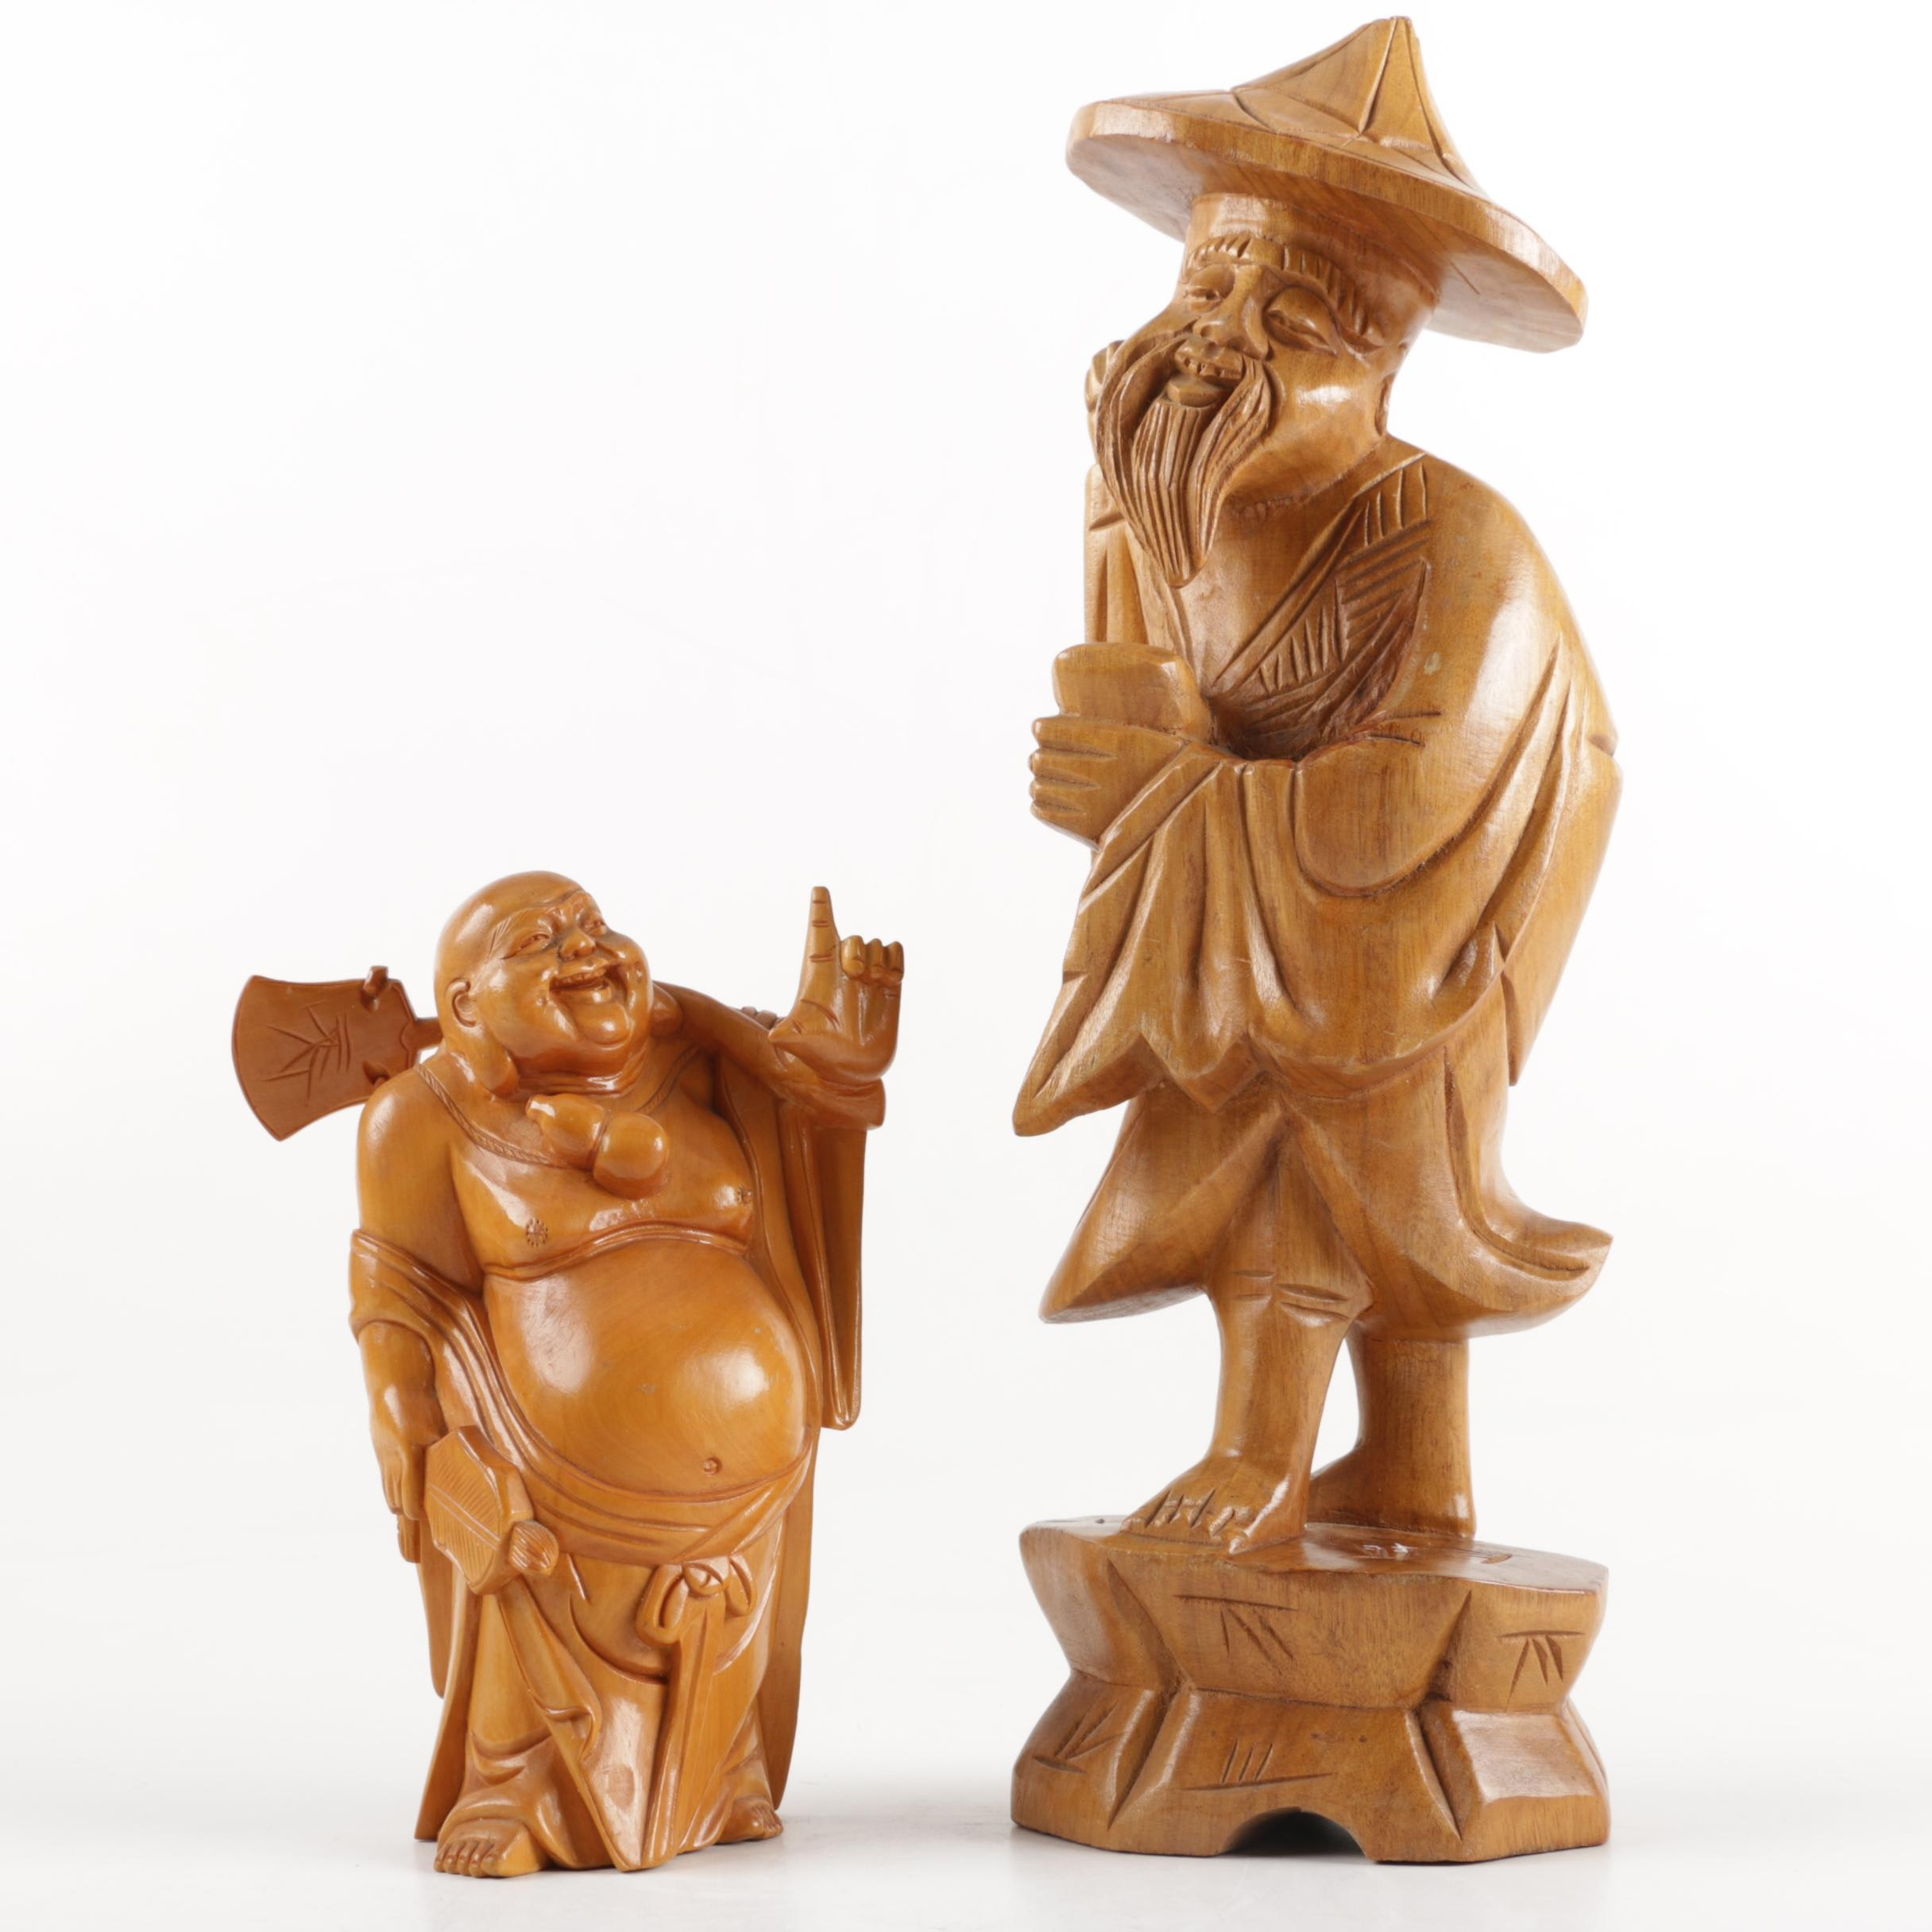 Pair of Wooden East Asian Figurines